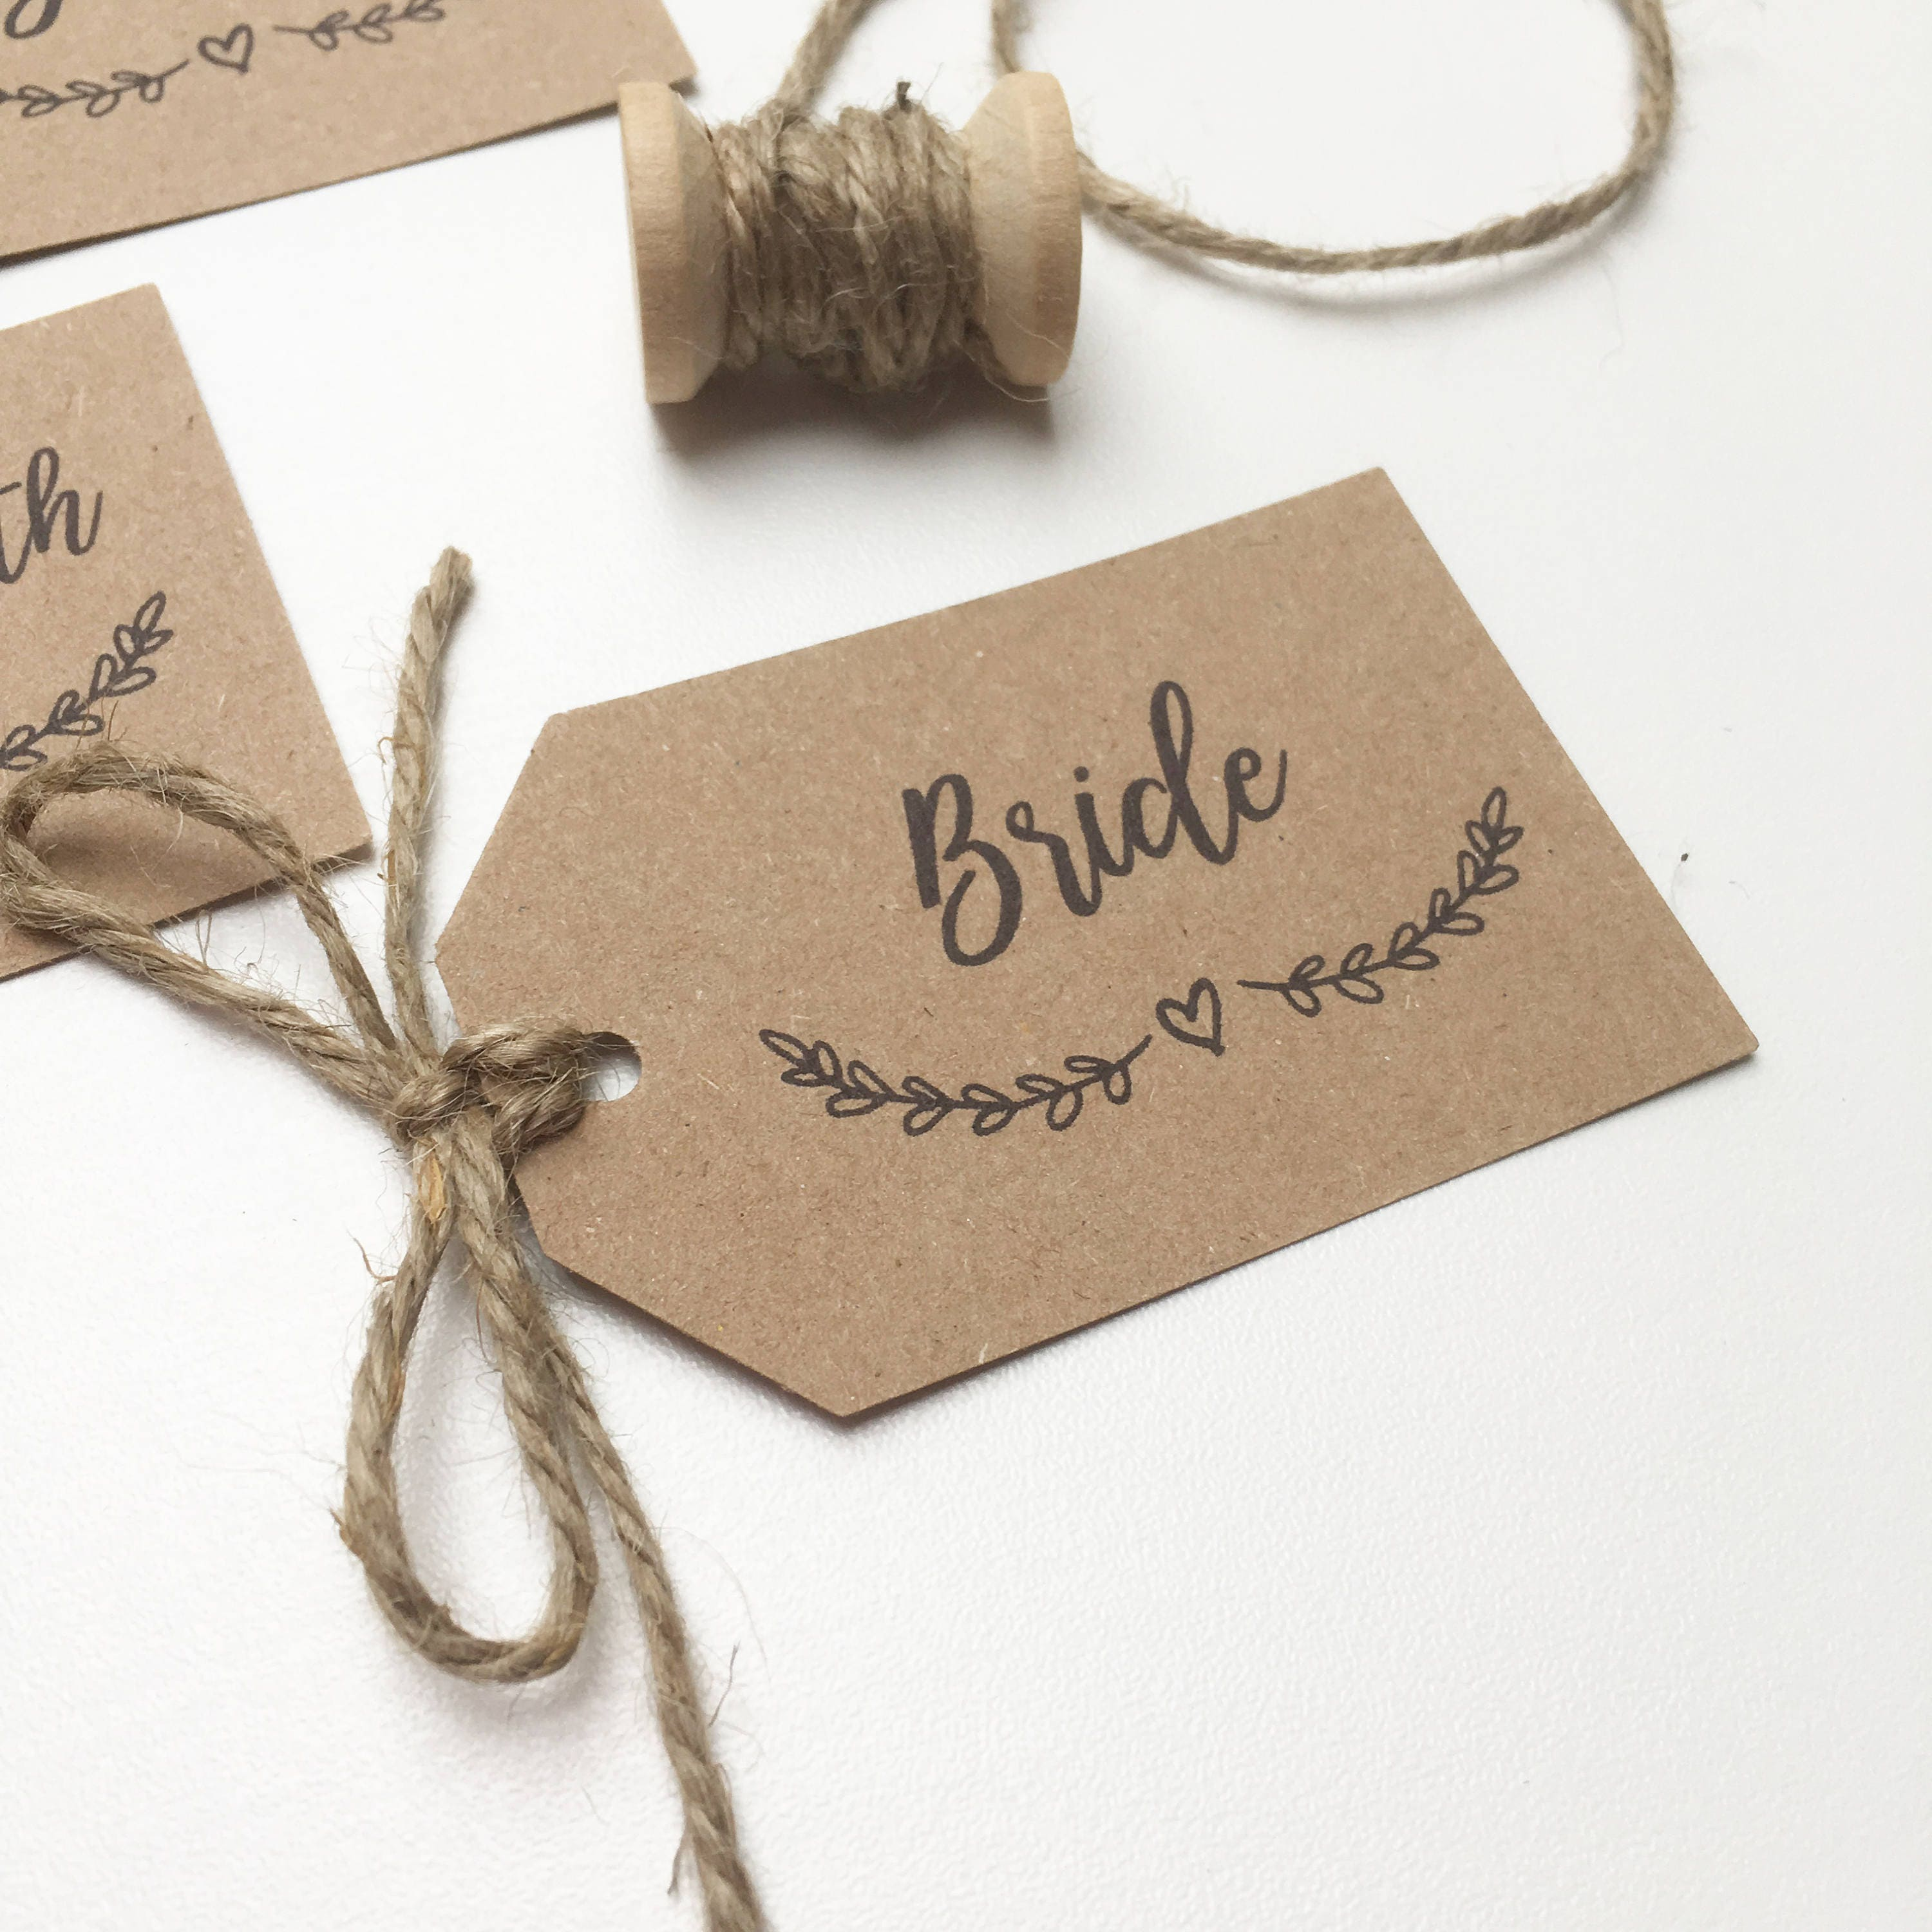 Rustic Wedding Place Name Tags